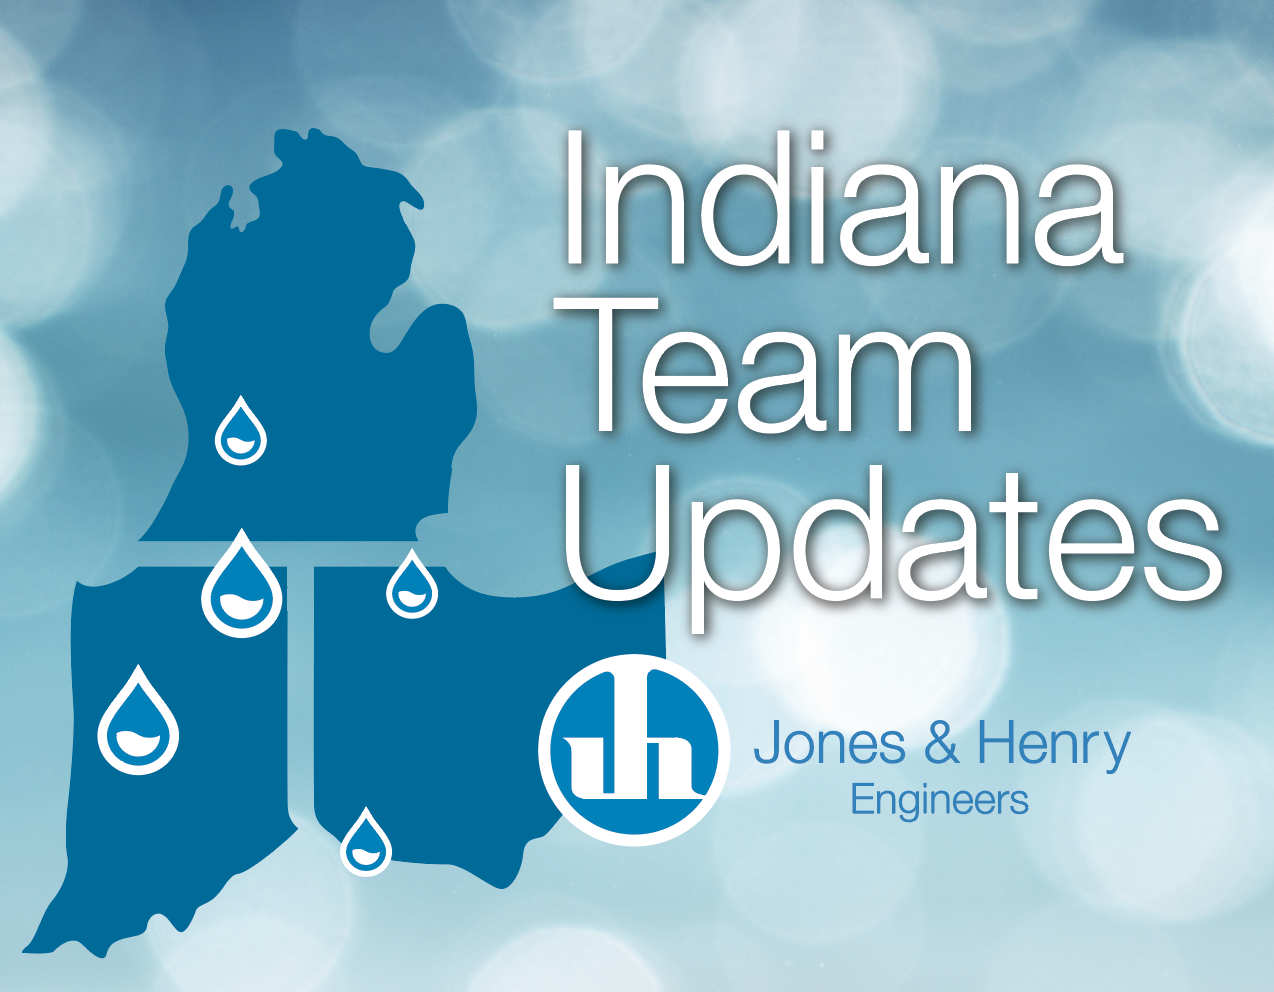 Jones & Henry Engineers Indiana Offices Announce Promotions and New Team Members